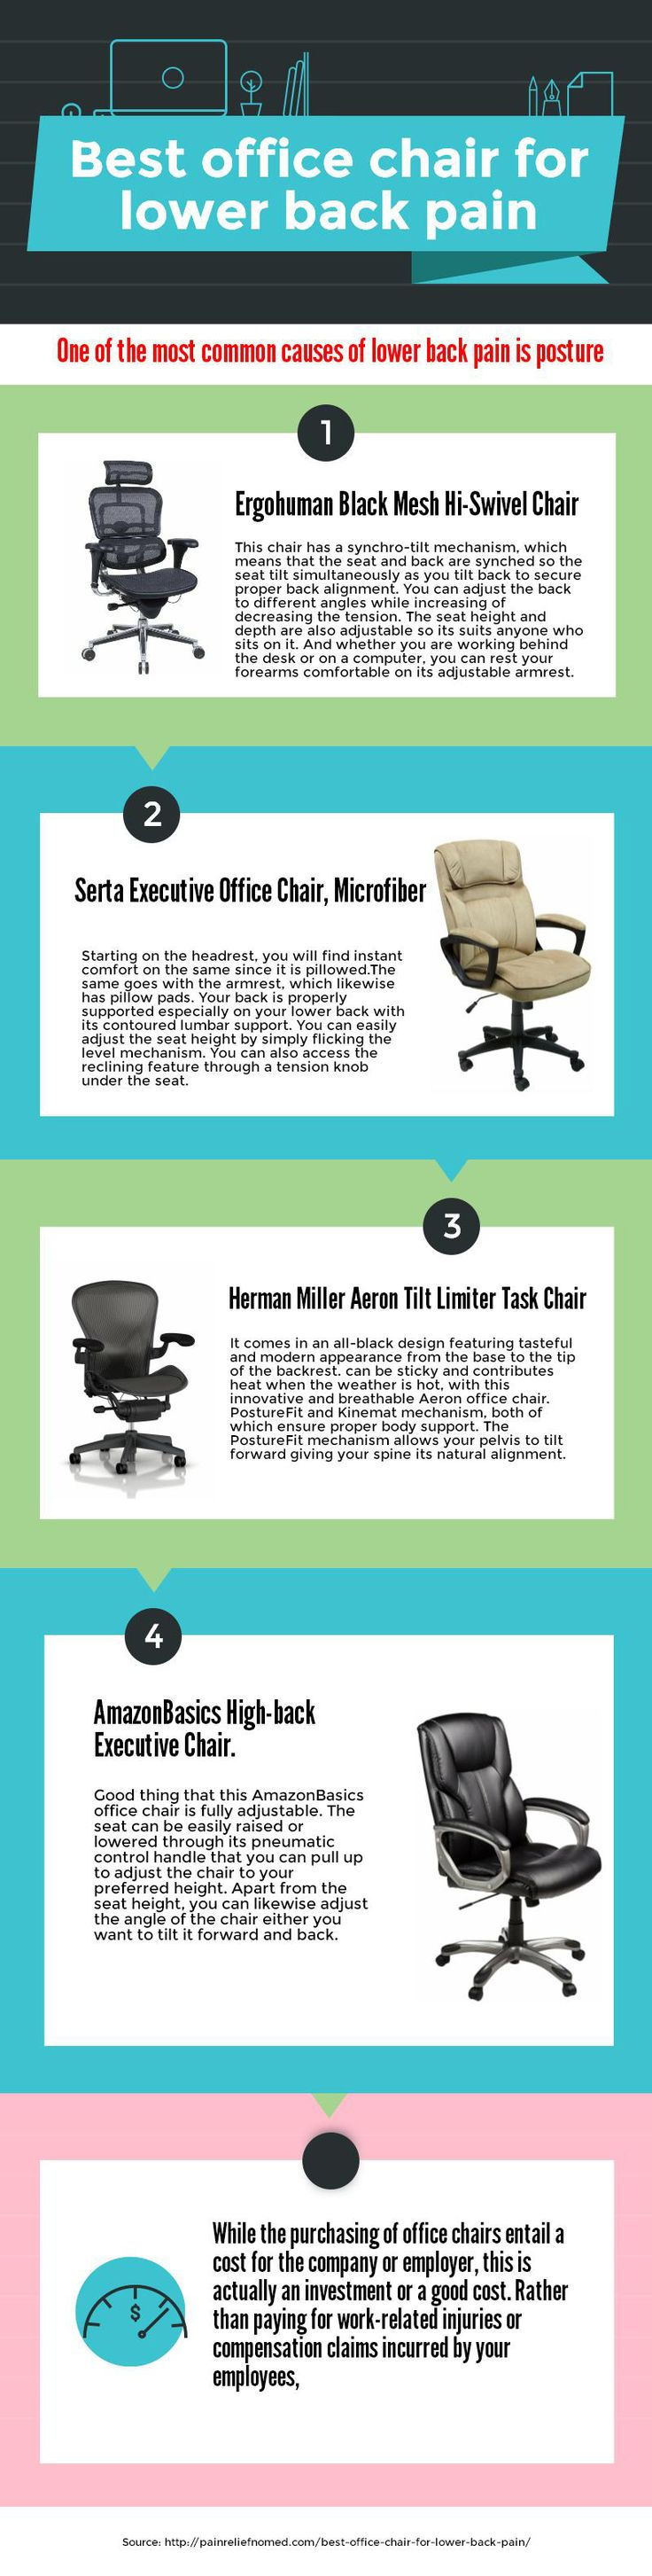 Aeron best office chairs for lower back pain - Best Office Chair For Lower Back Pain Can Help Relief Lower Back Pain That Can Hamper One S Performance Of Duties And Restrict His Or Her Movement